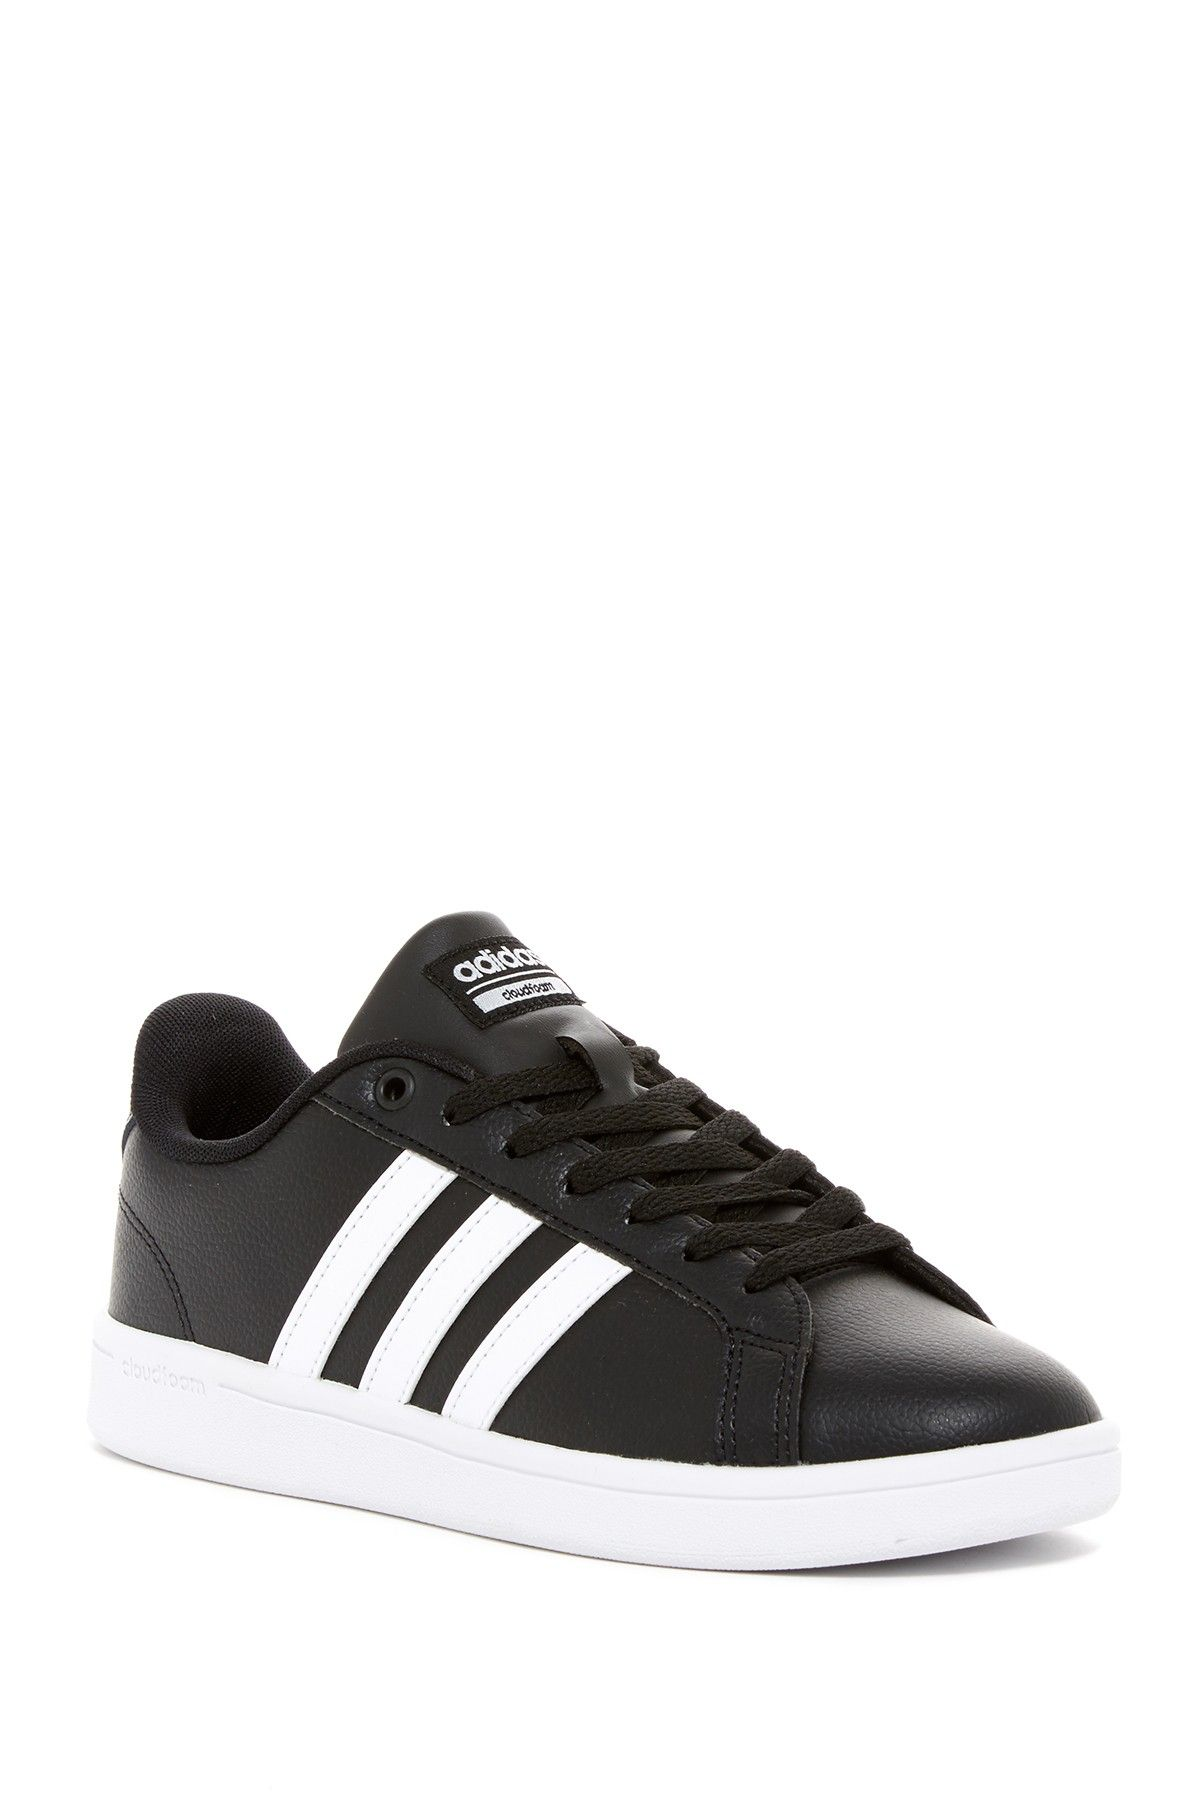 ca3505936 adidas - Cloudfoam Advantage Sneaker is now 23% off. Free Shipping on orders  over  100.